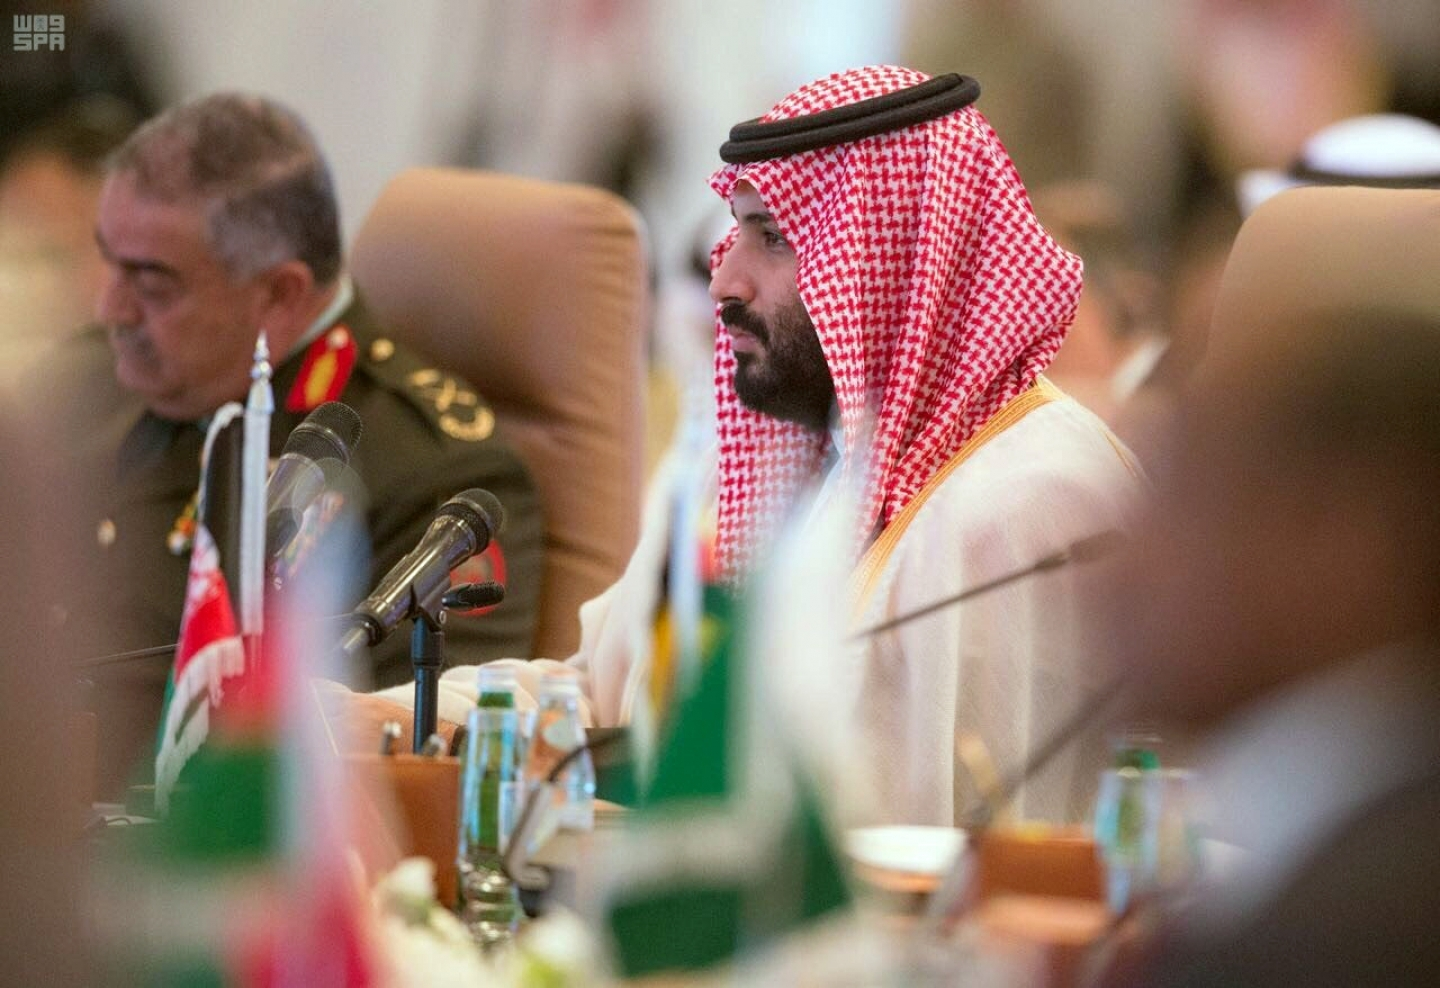 Saudi Crown Prince Mohammed bin Salman speaks at a meeting of the Islamic Military Counterterrorism Alliance in Riyadh, Saudi Arabia. (Saudi Press Agency via AP)